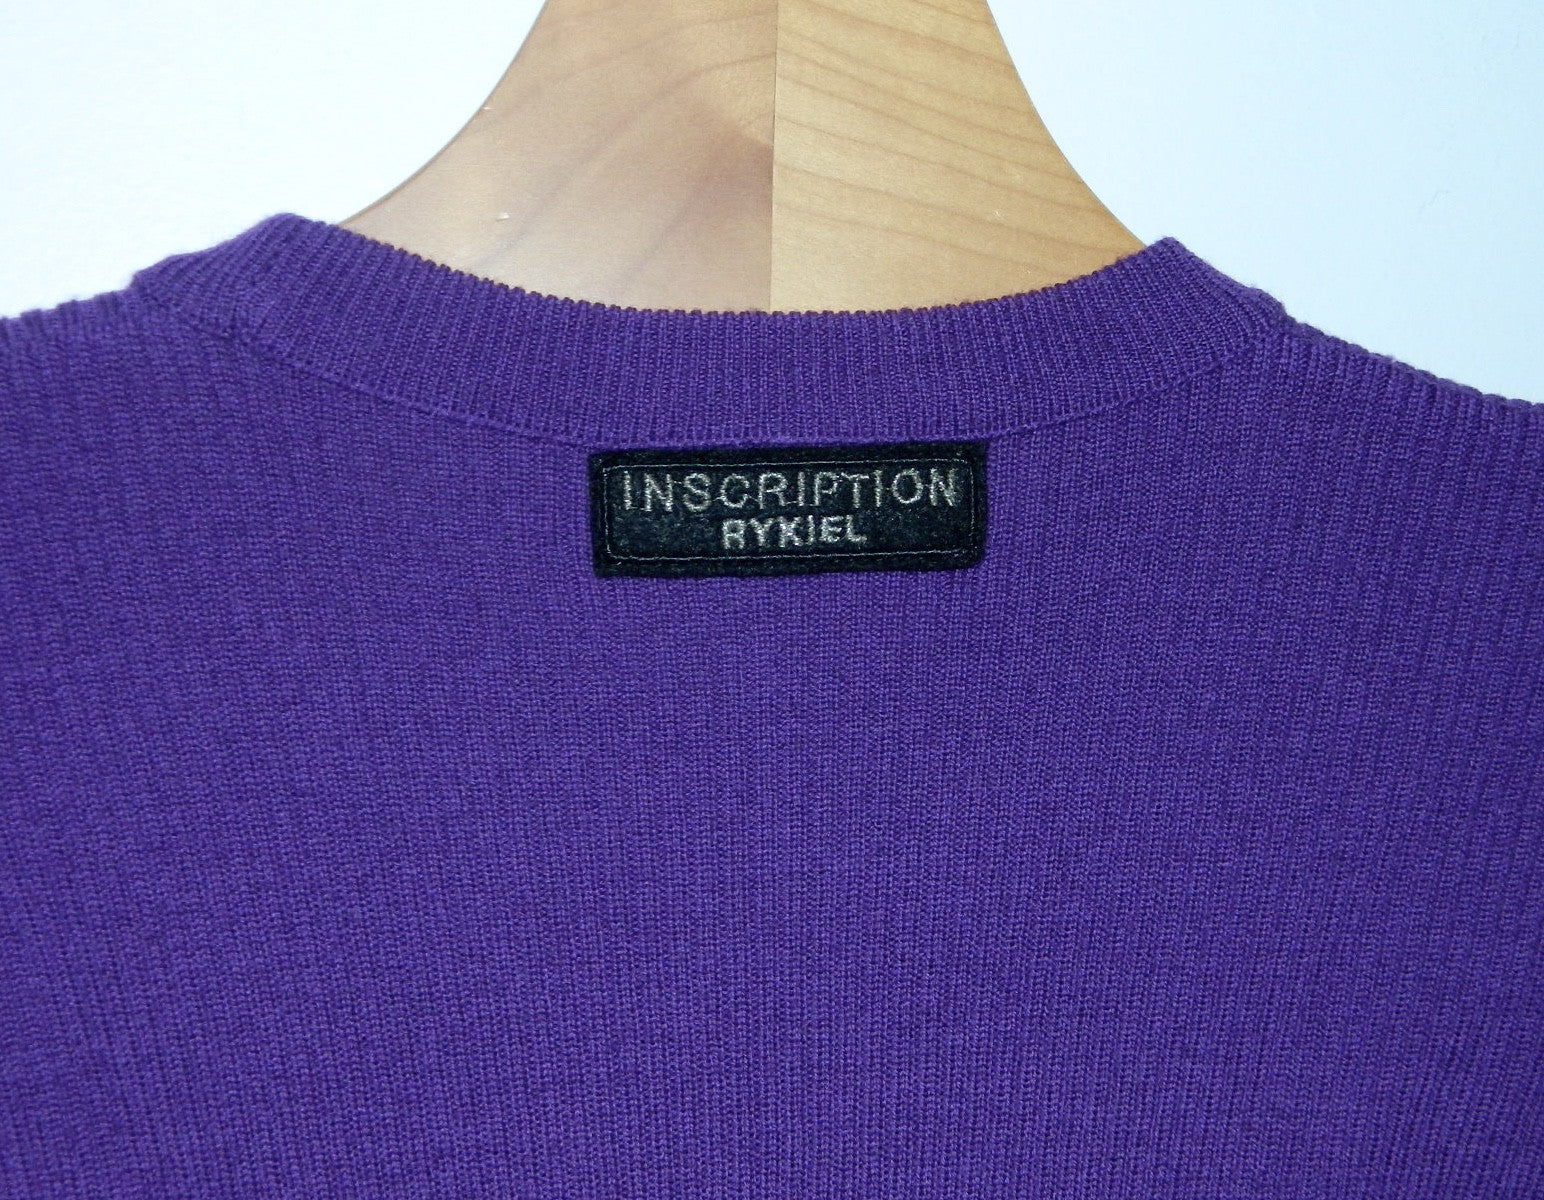 1980s bodysuit vintage Sonia Rykiel Inscription wool rib knit top sweater